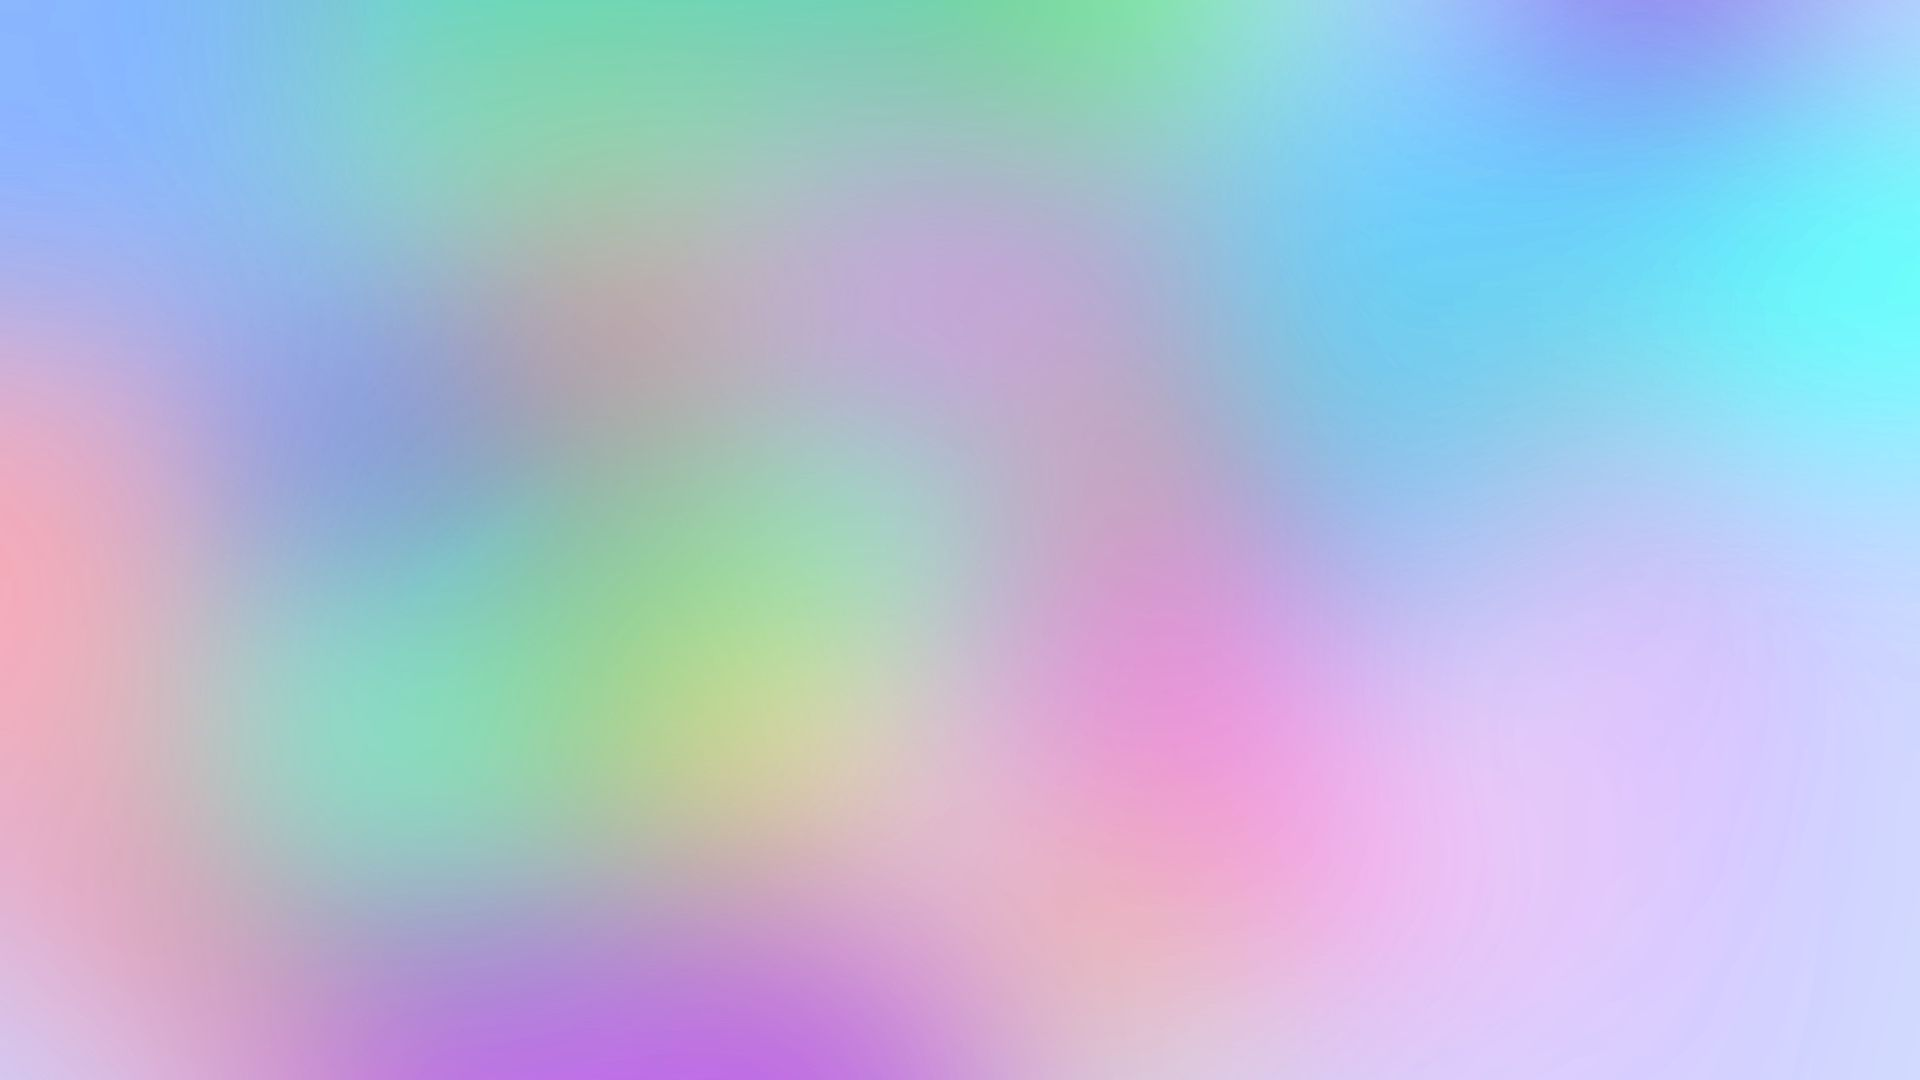 1920x1080 Pastel Rainbow Wallpapers Background - Galaxy Rainbow Pastel ...